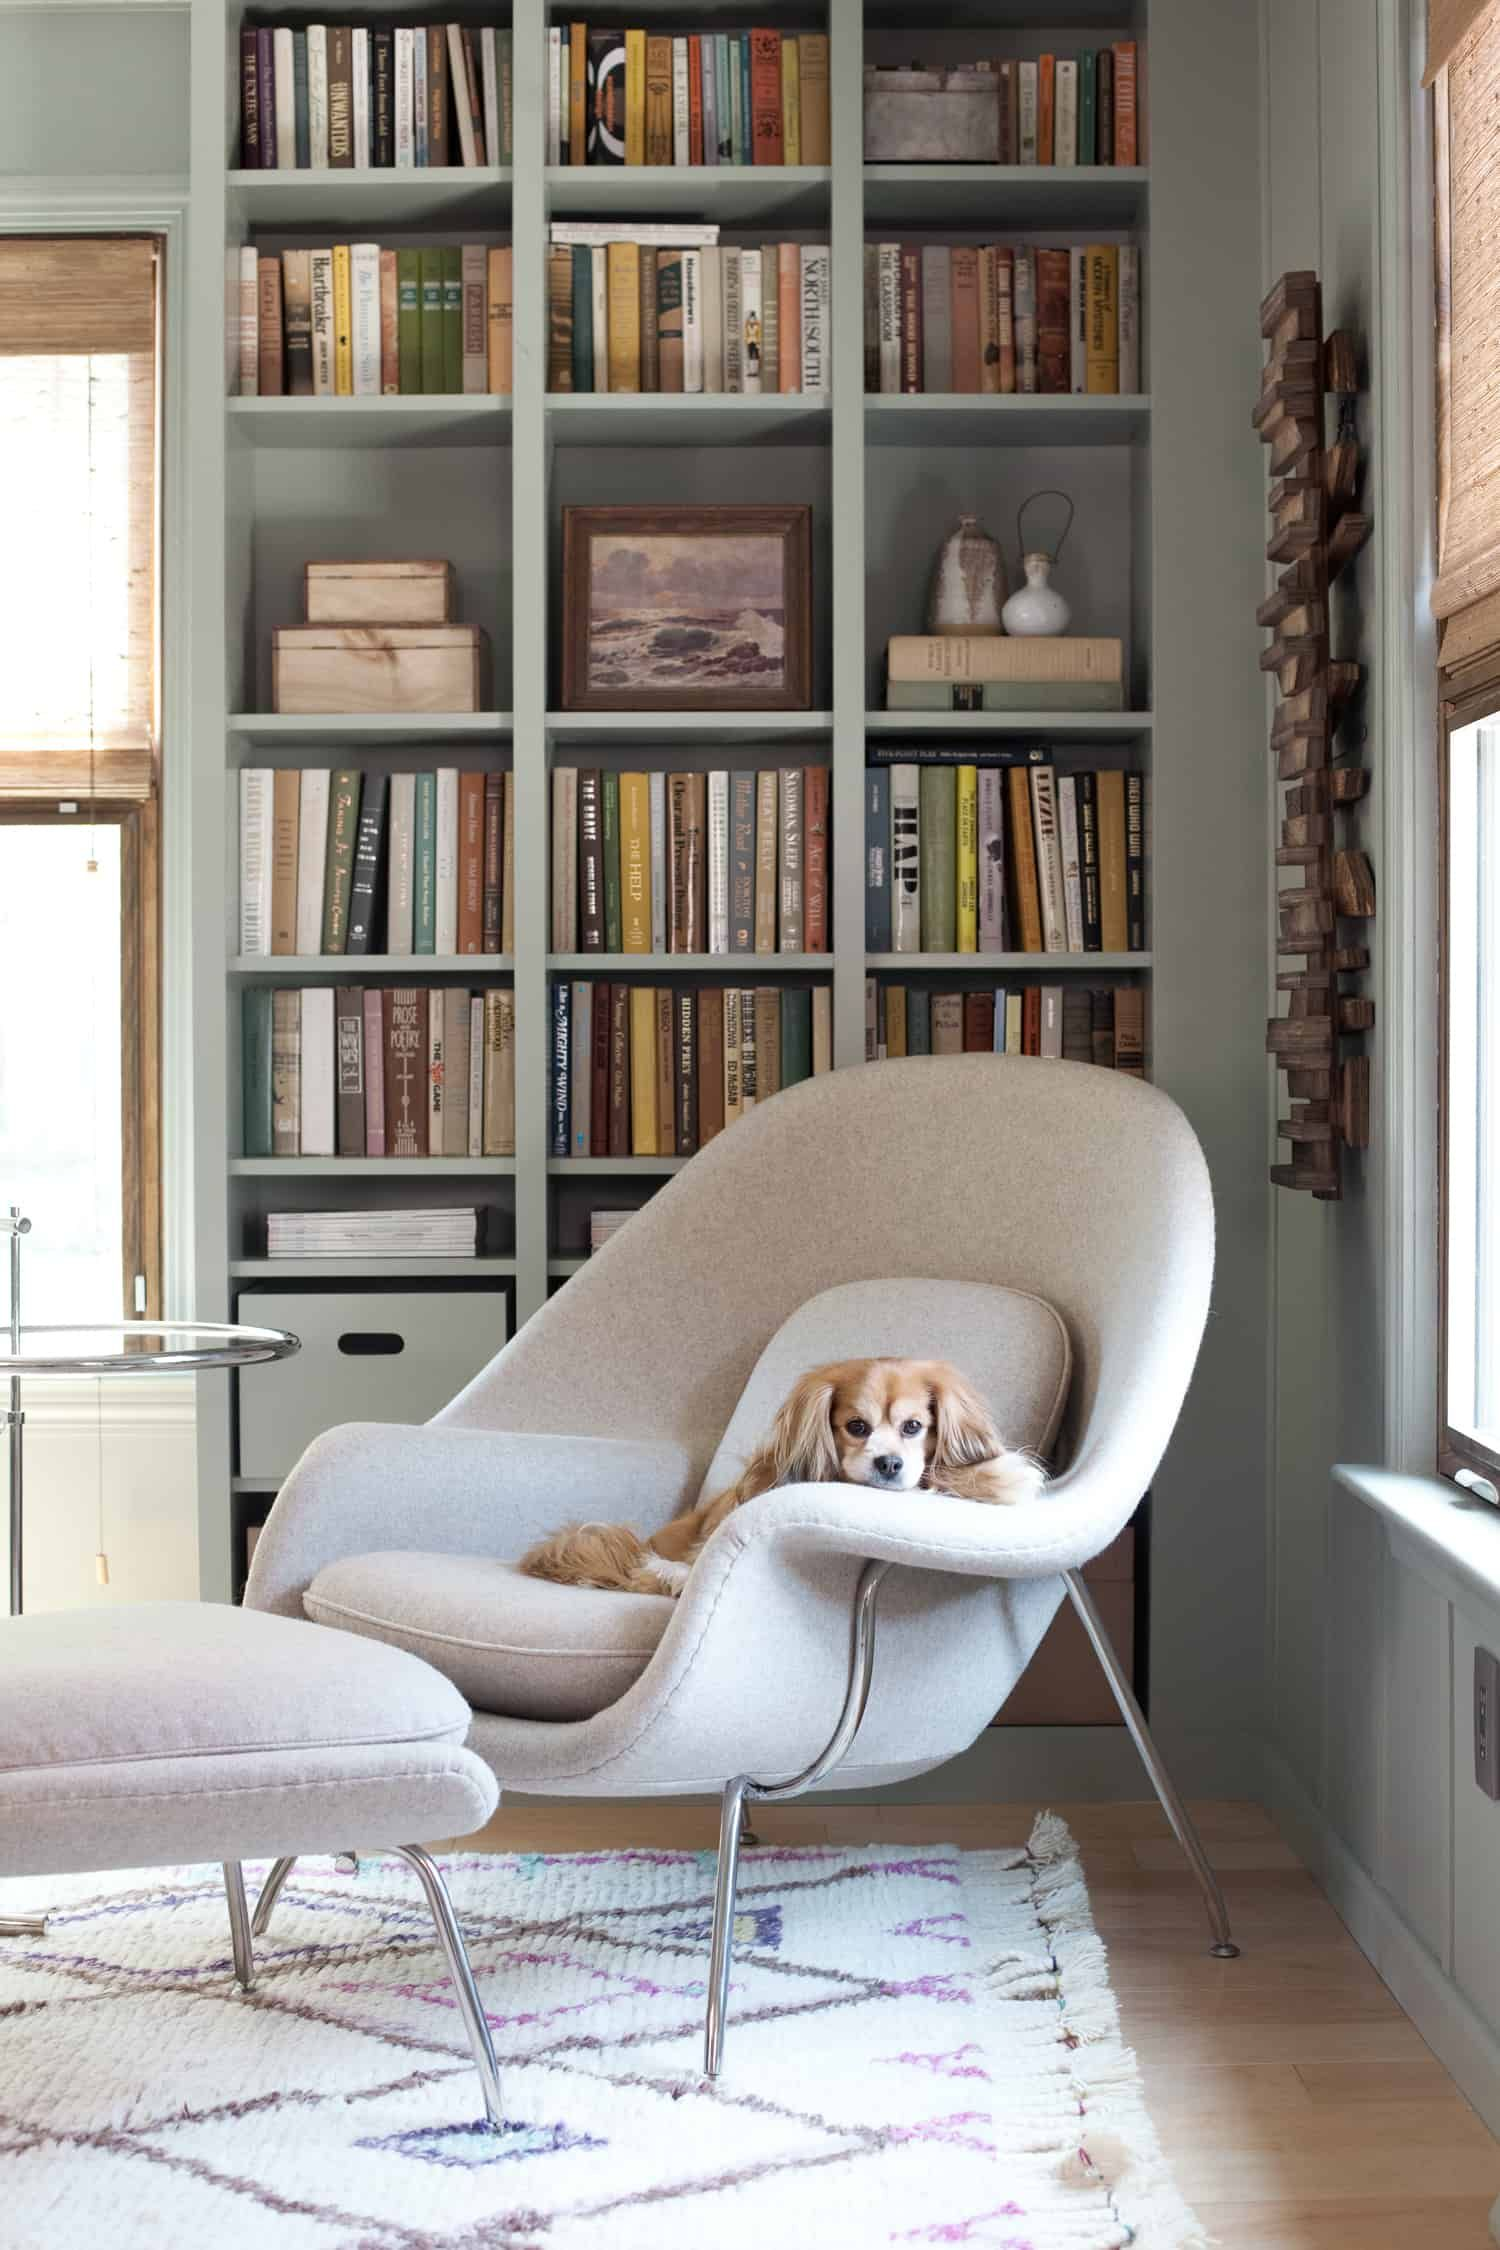 Ikea Home Office Library Ideas: Built-In IKEA Billy Bookcase Hack